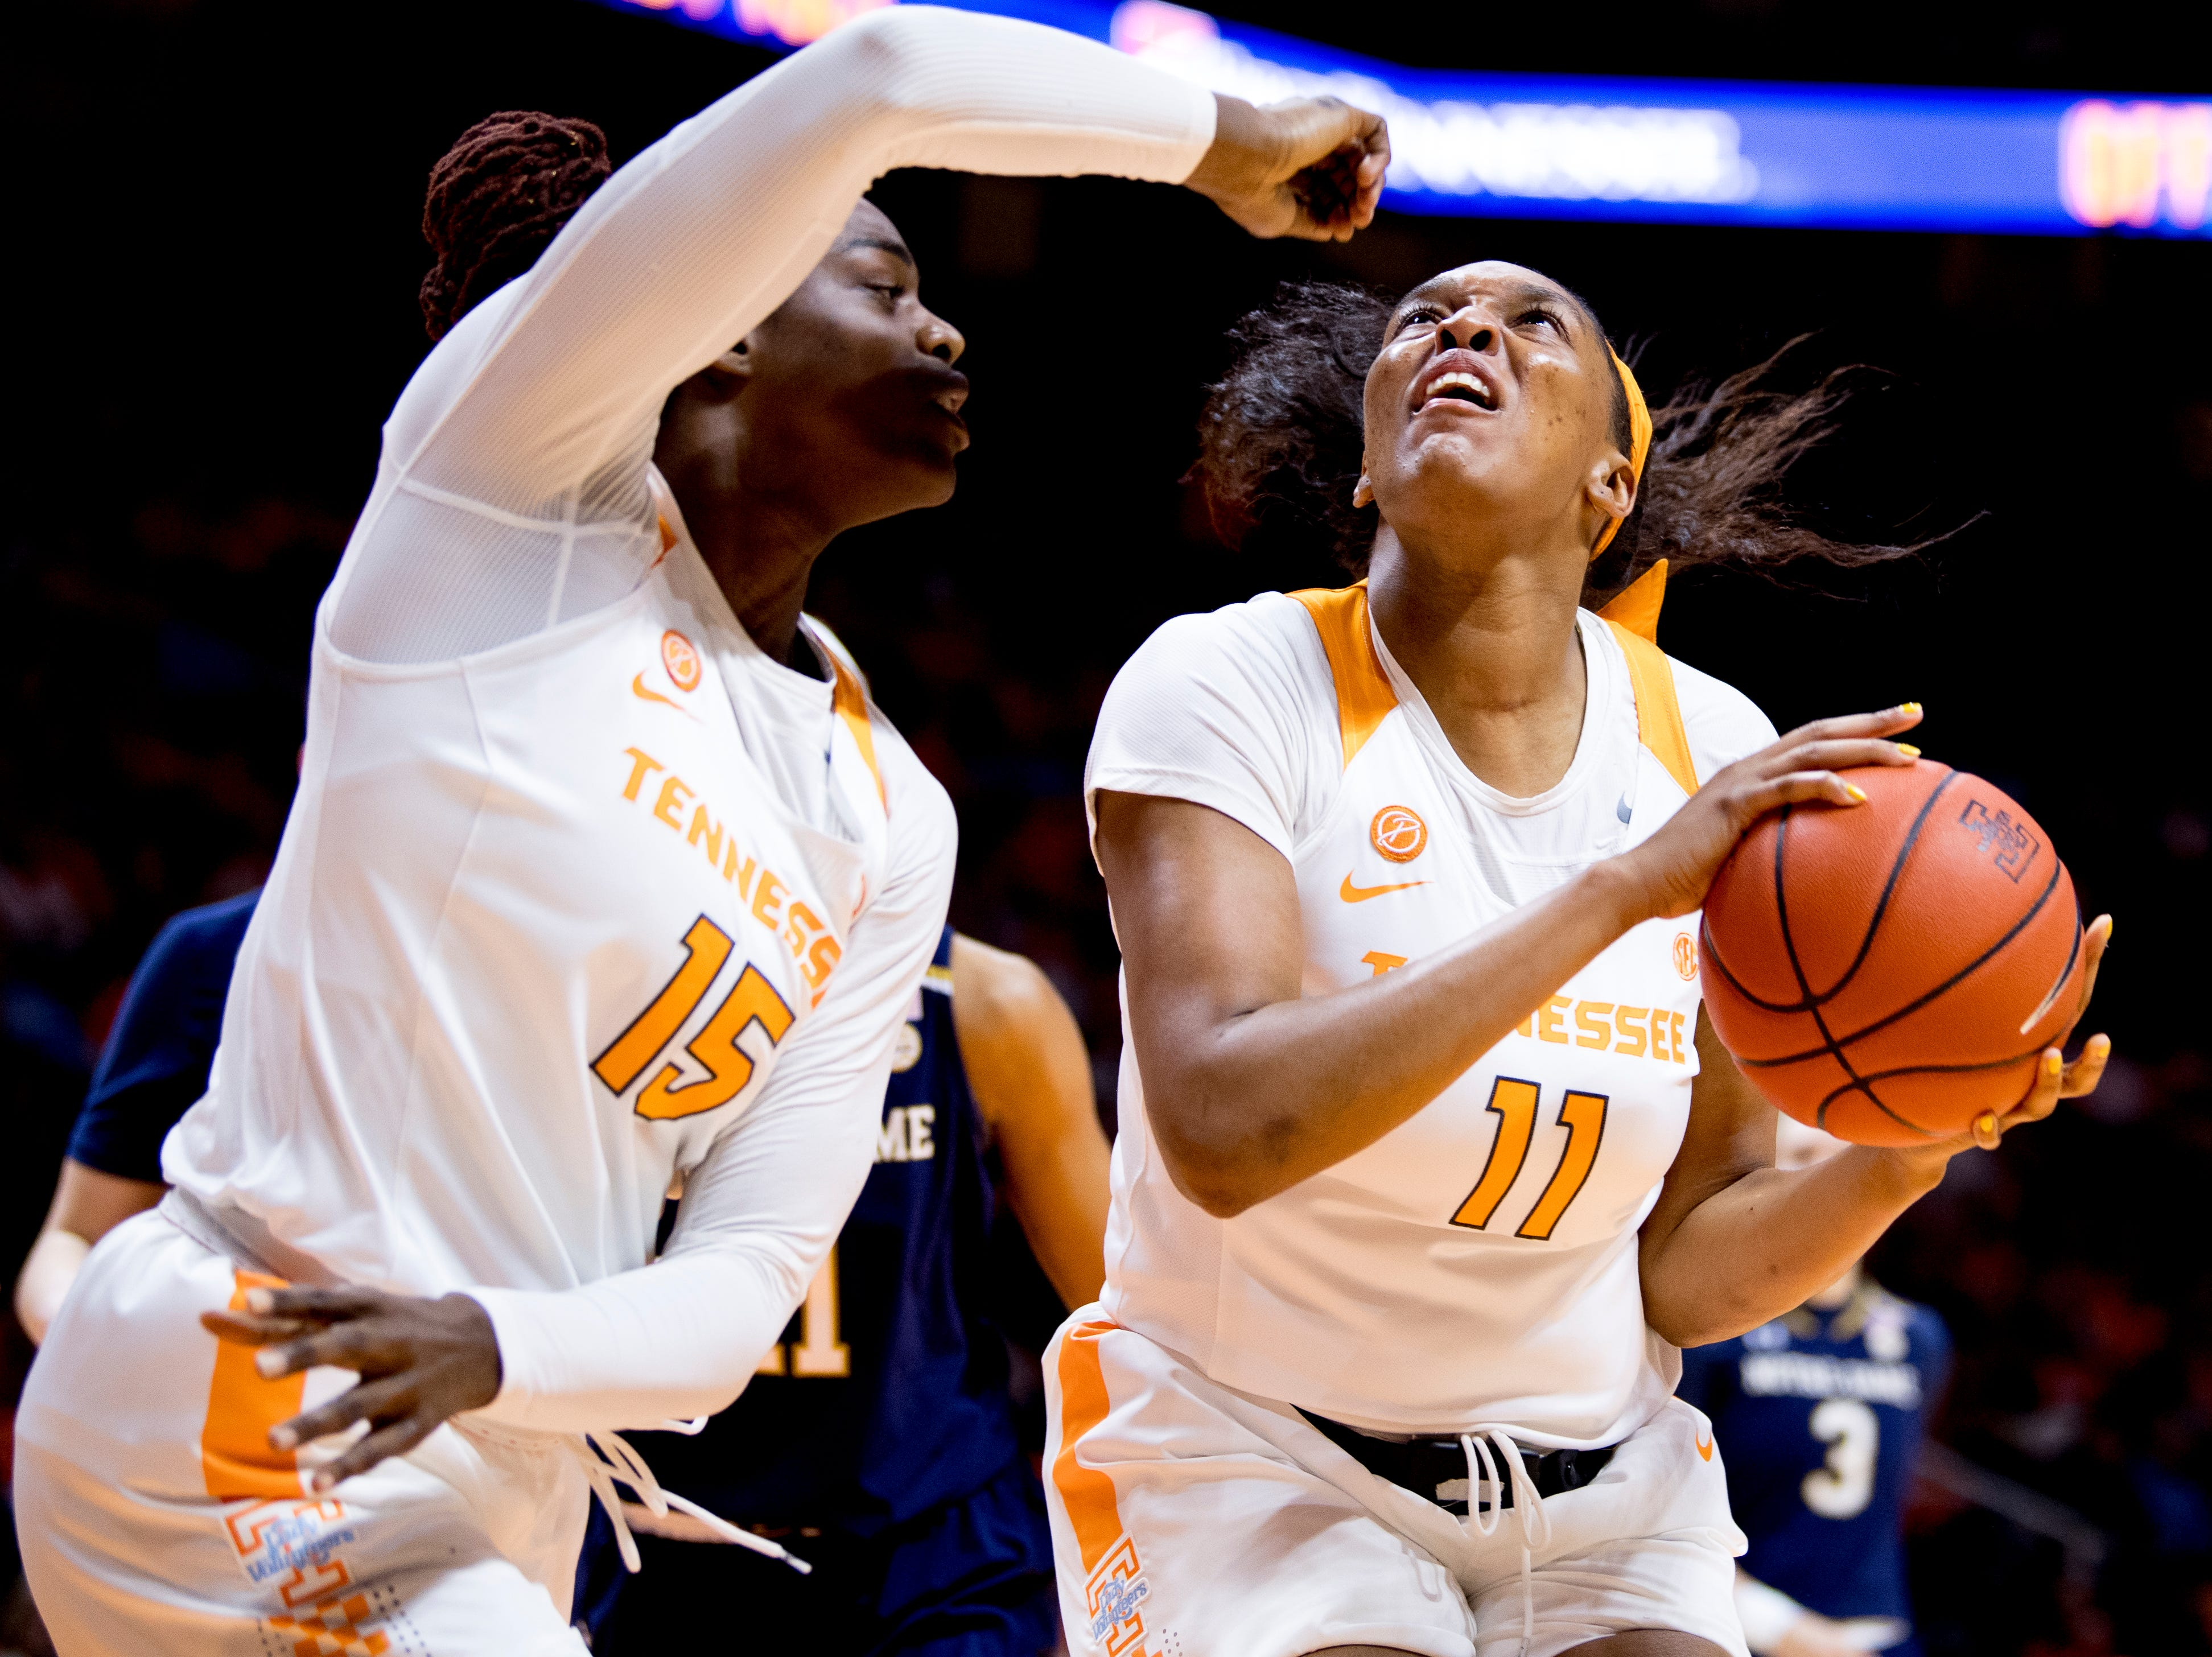 Tennessee center Kasiyahna Kushkituah (11) shoots the ball past Tennessee forward Cheridene Green (15) during a game between Tennessee and Notre Dame at Thompson-Boling Arena in Knoxville, Tennessee on Thursday, January 24, 2019.